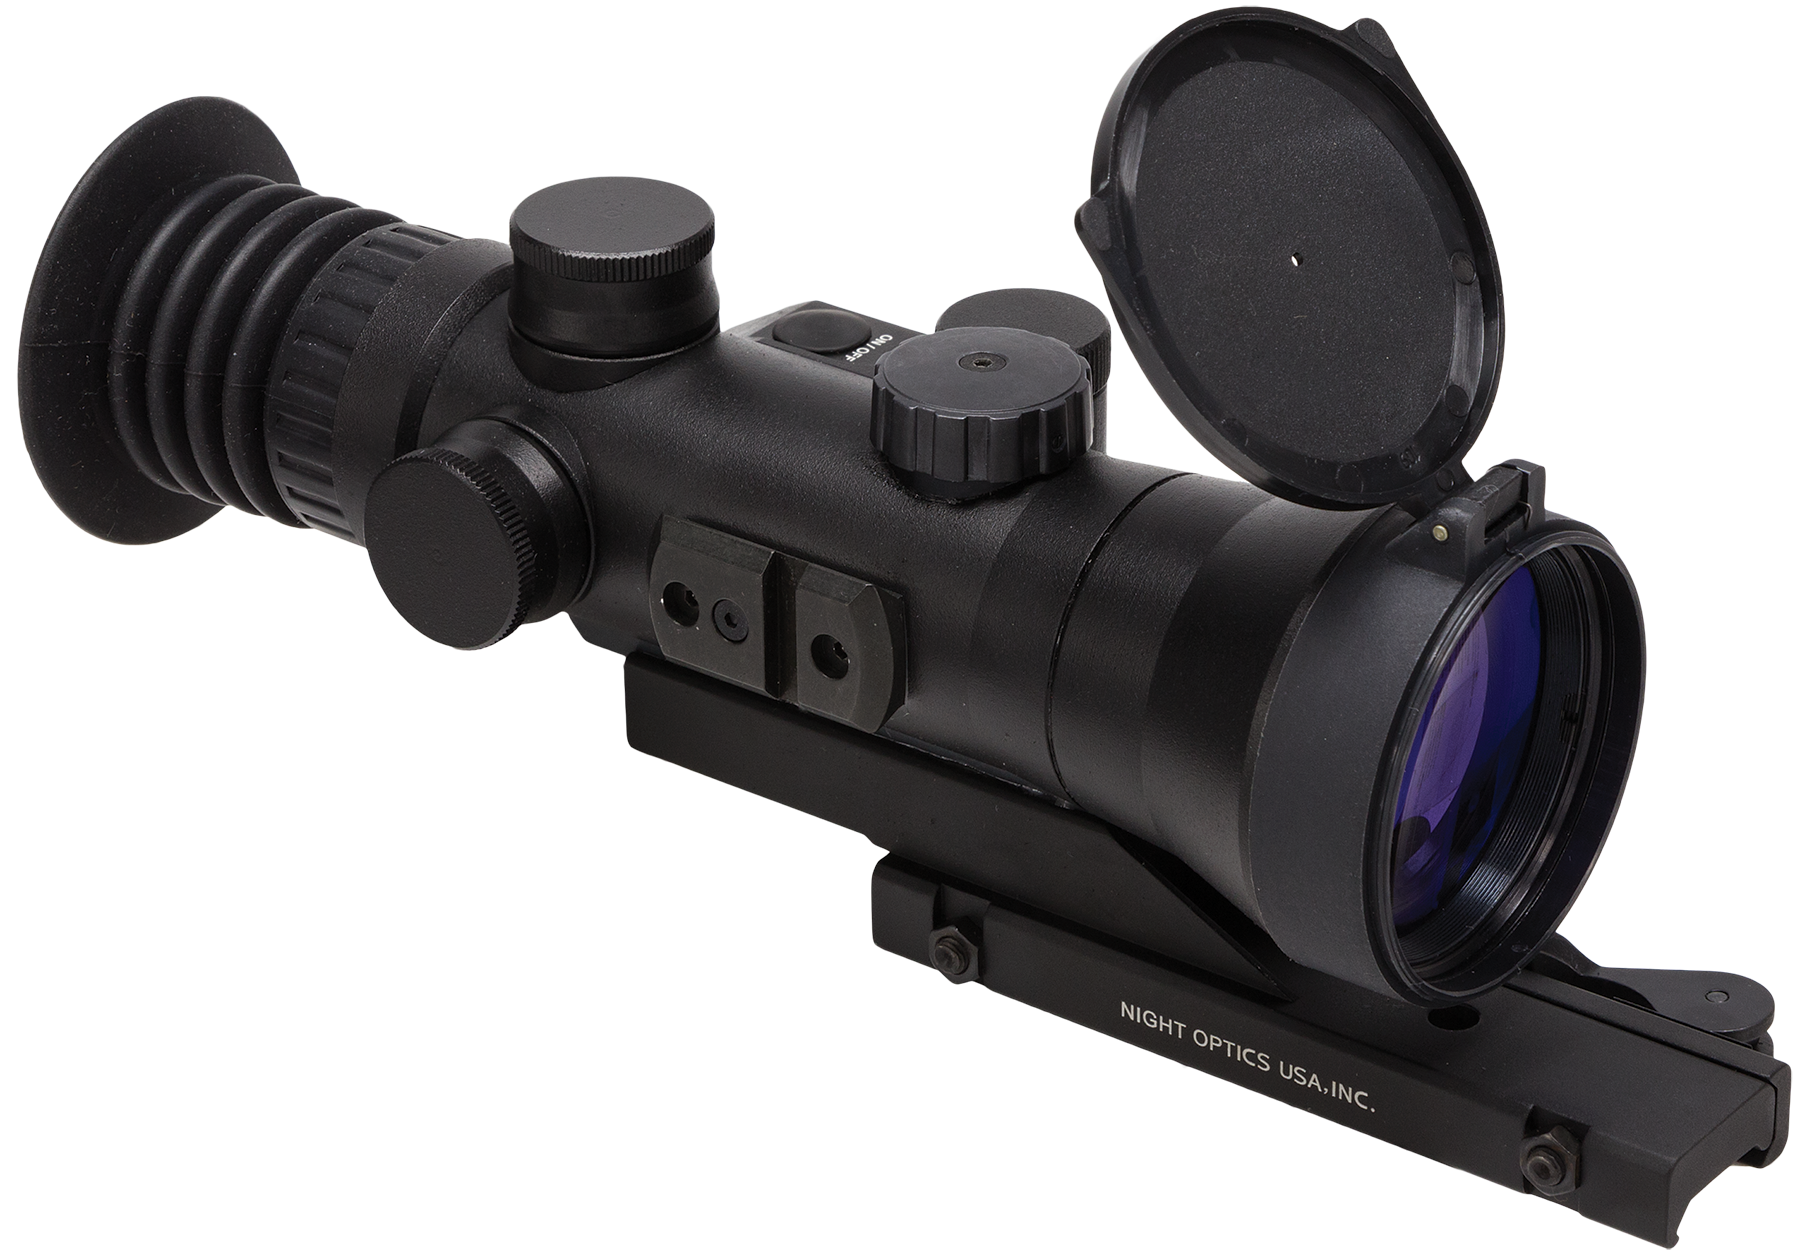 Night Optics NS7303S D-730 Night Vision Scope 3rd Gen 3.7x 85mm 8.5 degrees FOV